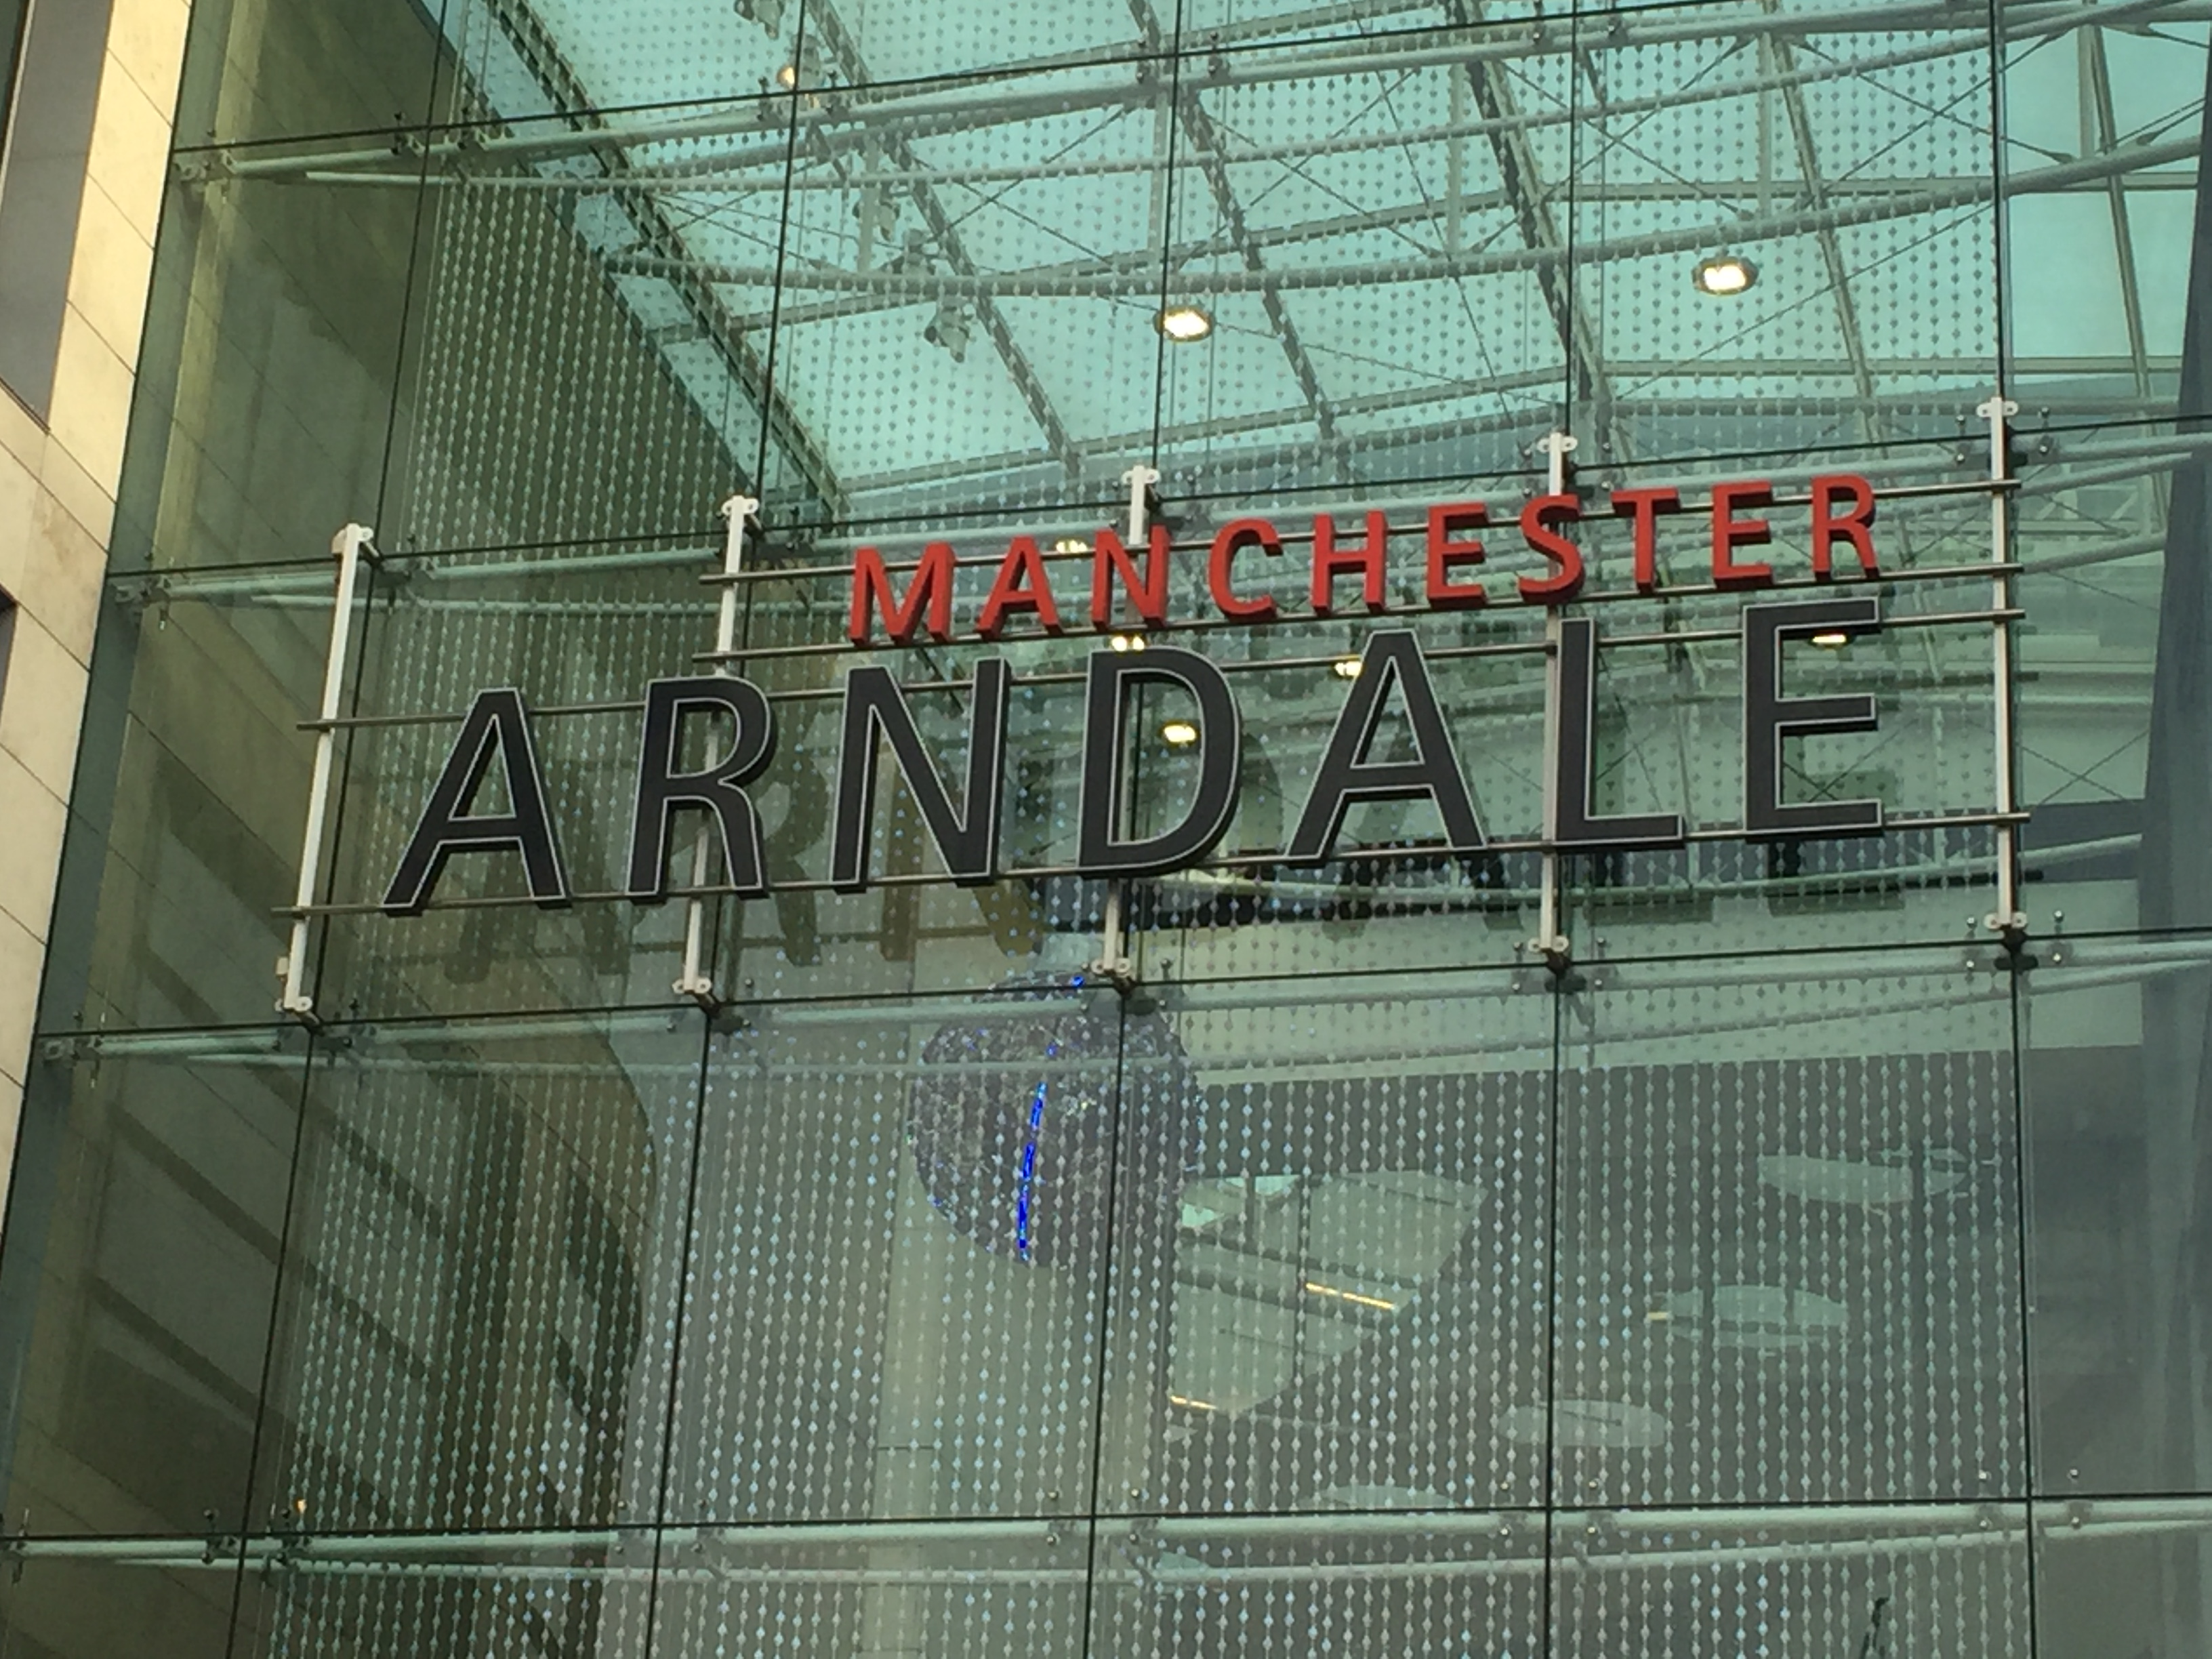 An image of the Manchester Arndale sign.